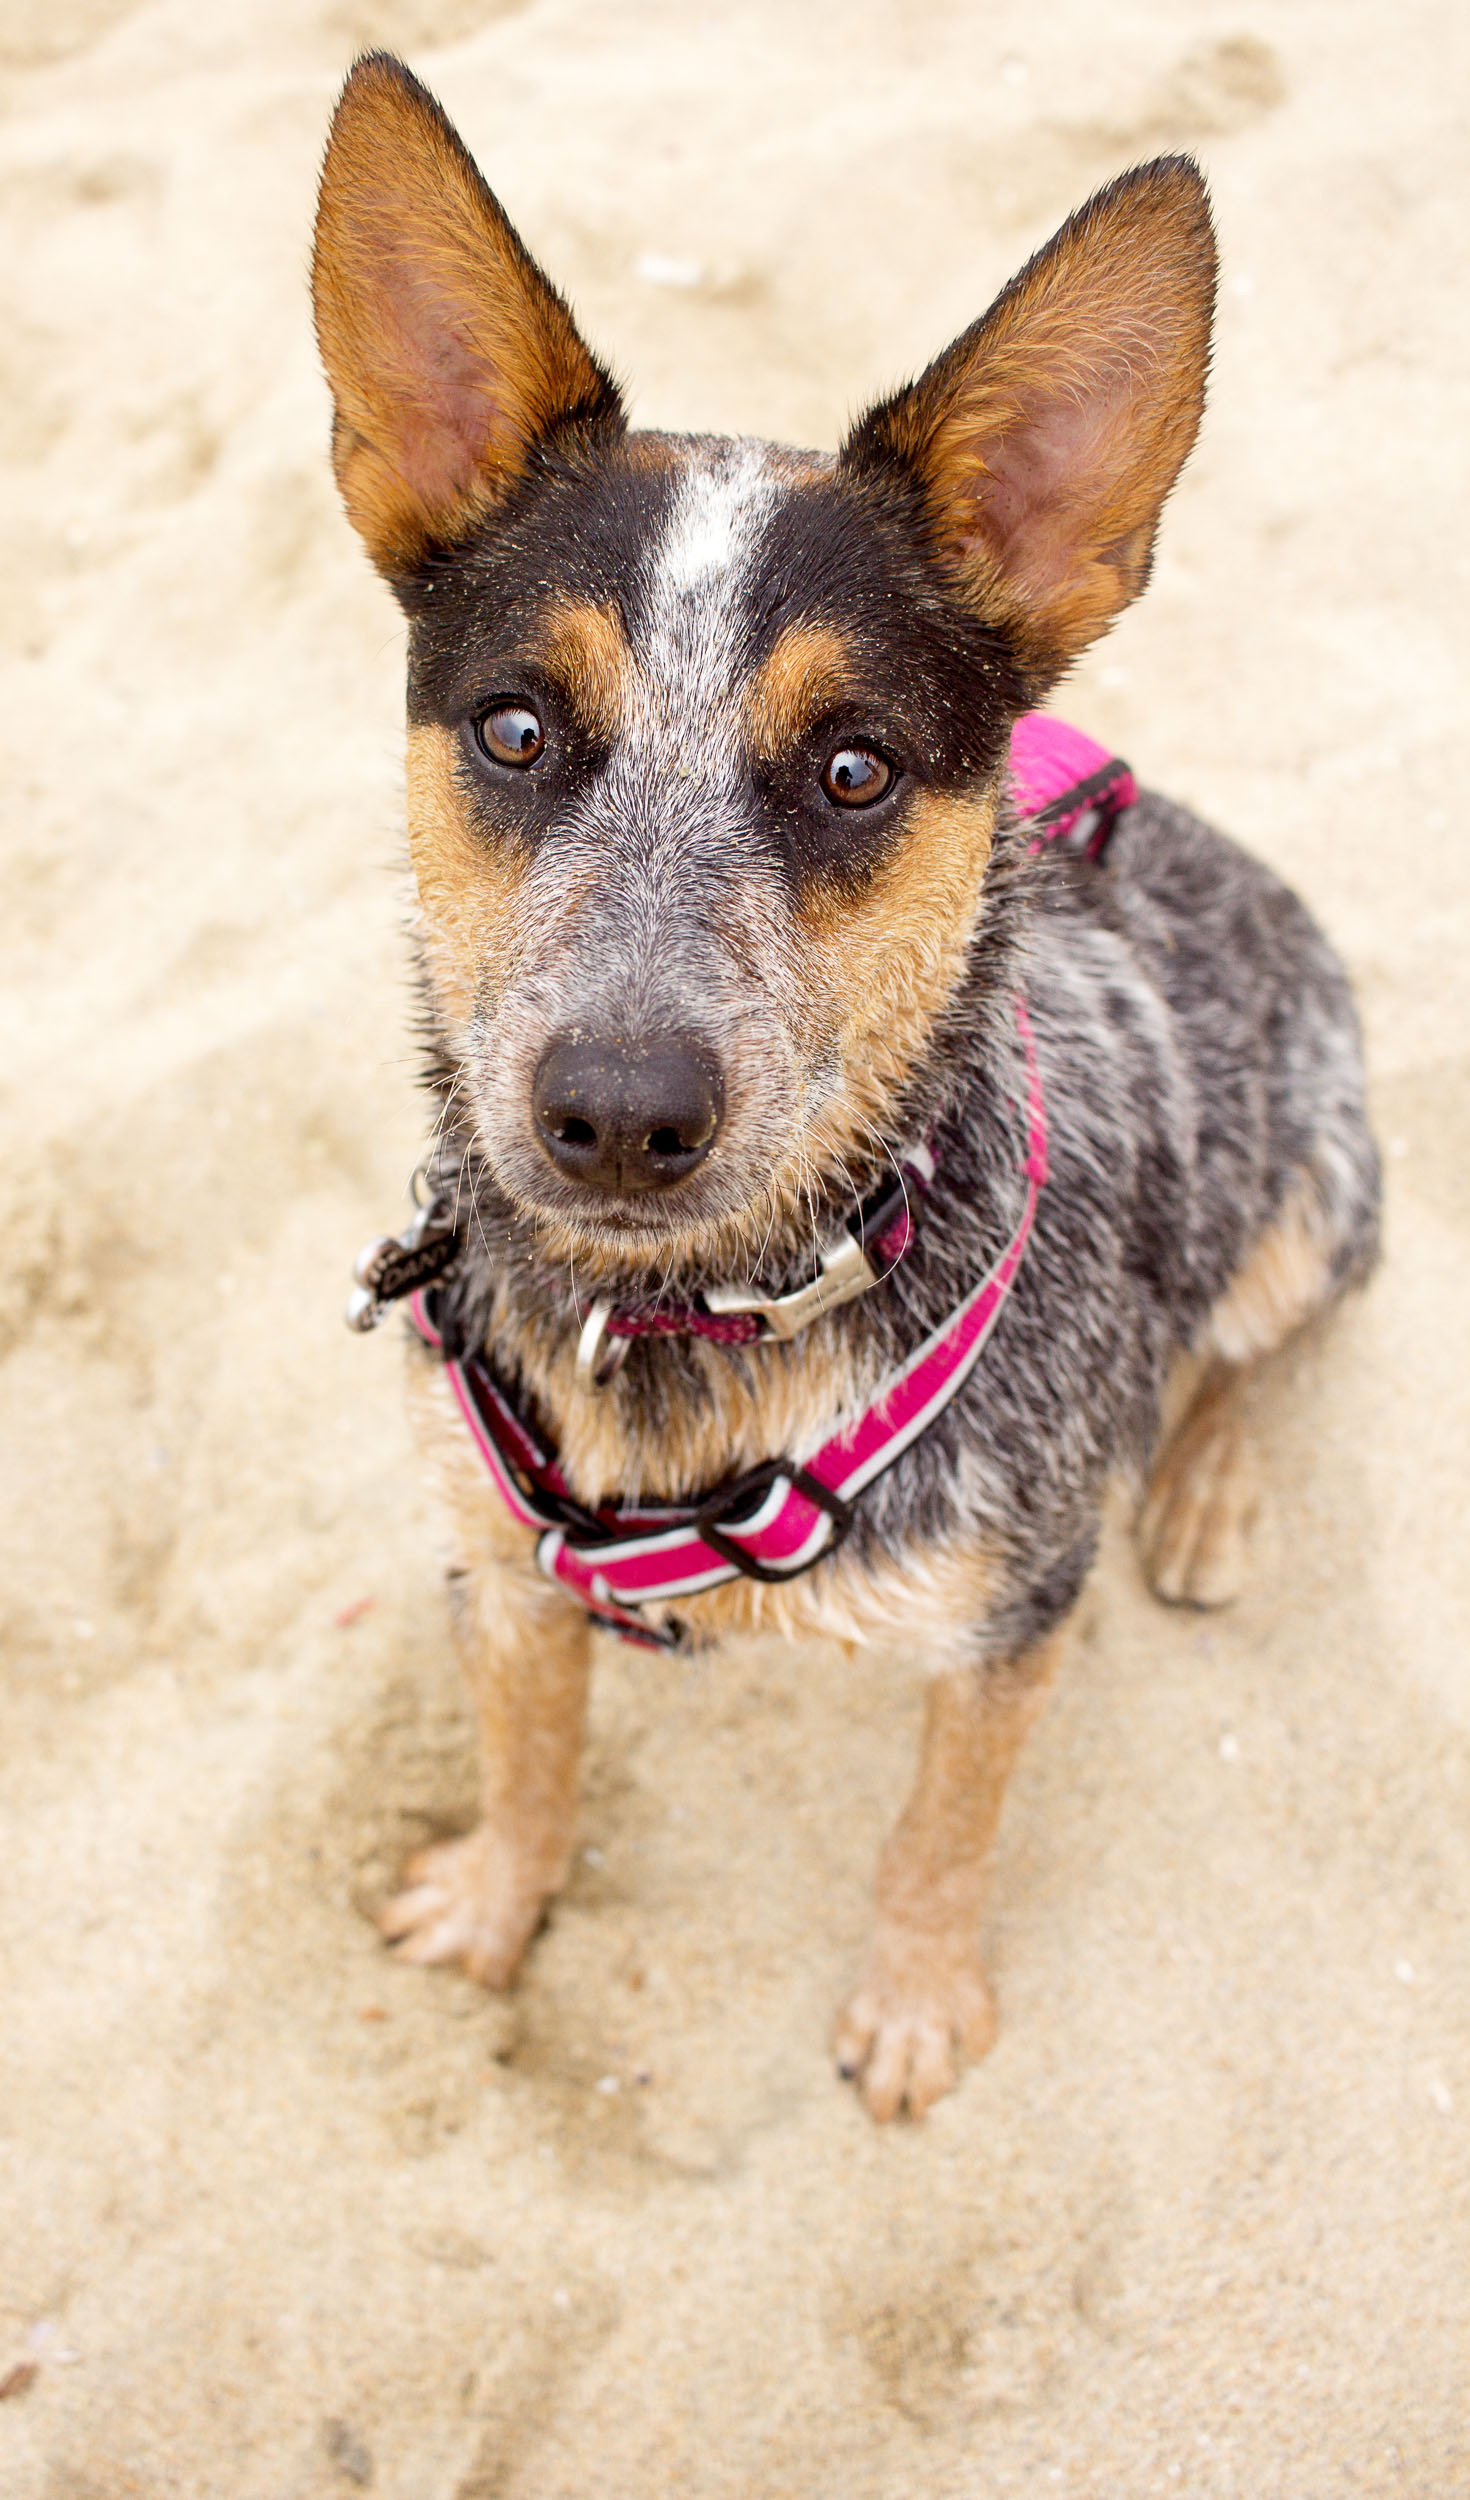 Orange-County-Dog-Photography-Pet-Huntington-Dog-Beach-SoCal-Corgi-Beach-Day_Steamer-Lee_075.JPG